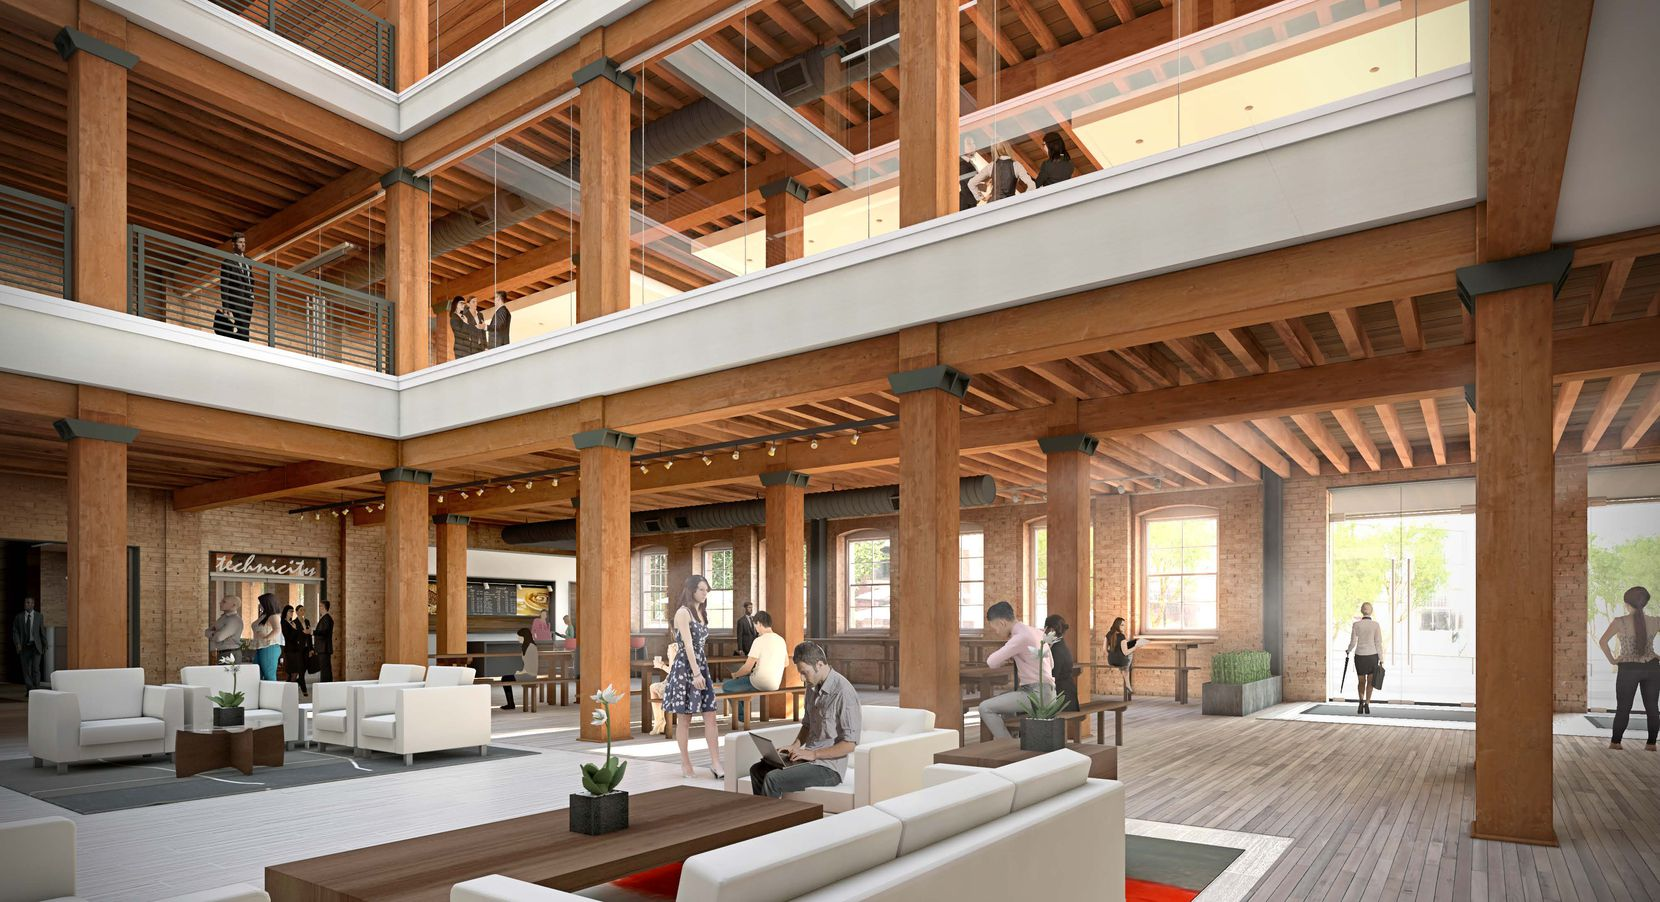 The former West End Marketplace retail and entertainment building is being converted into office space for tech and creative firms.